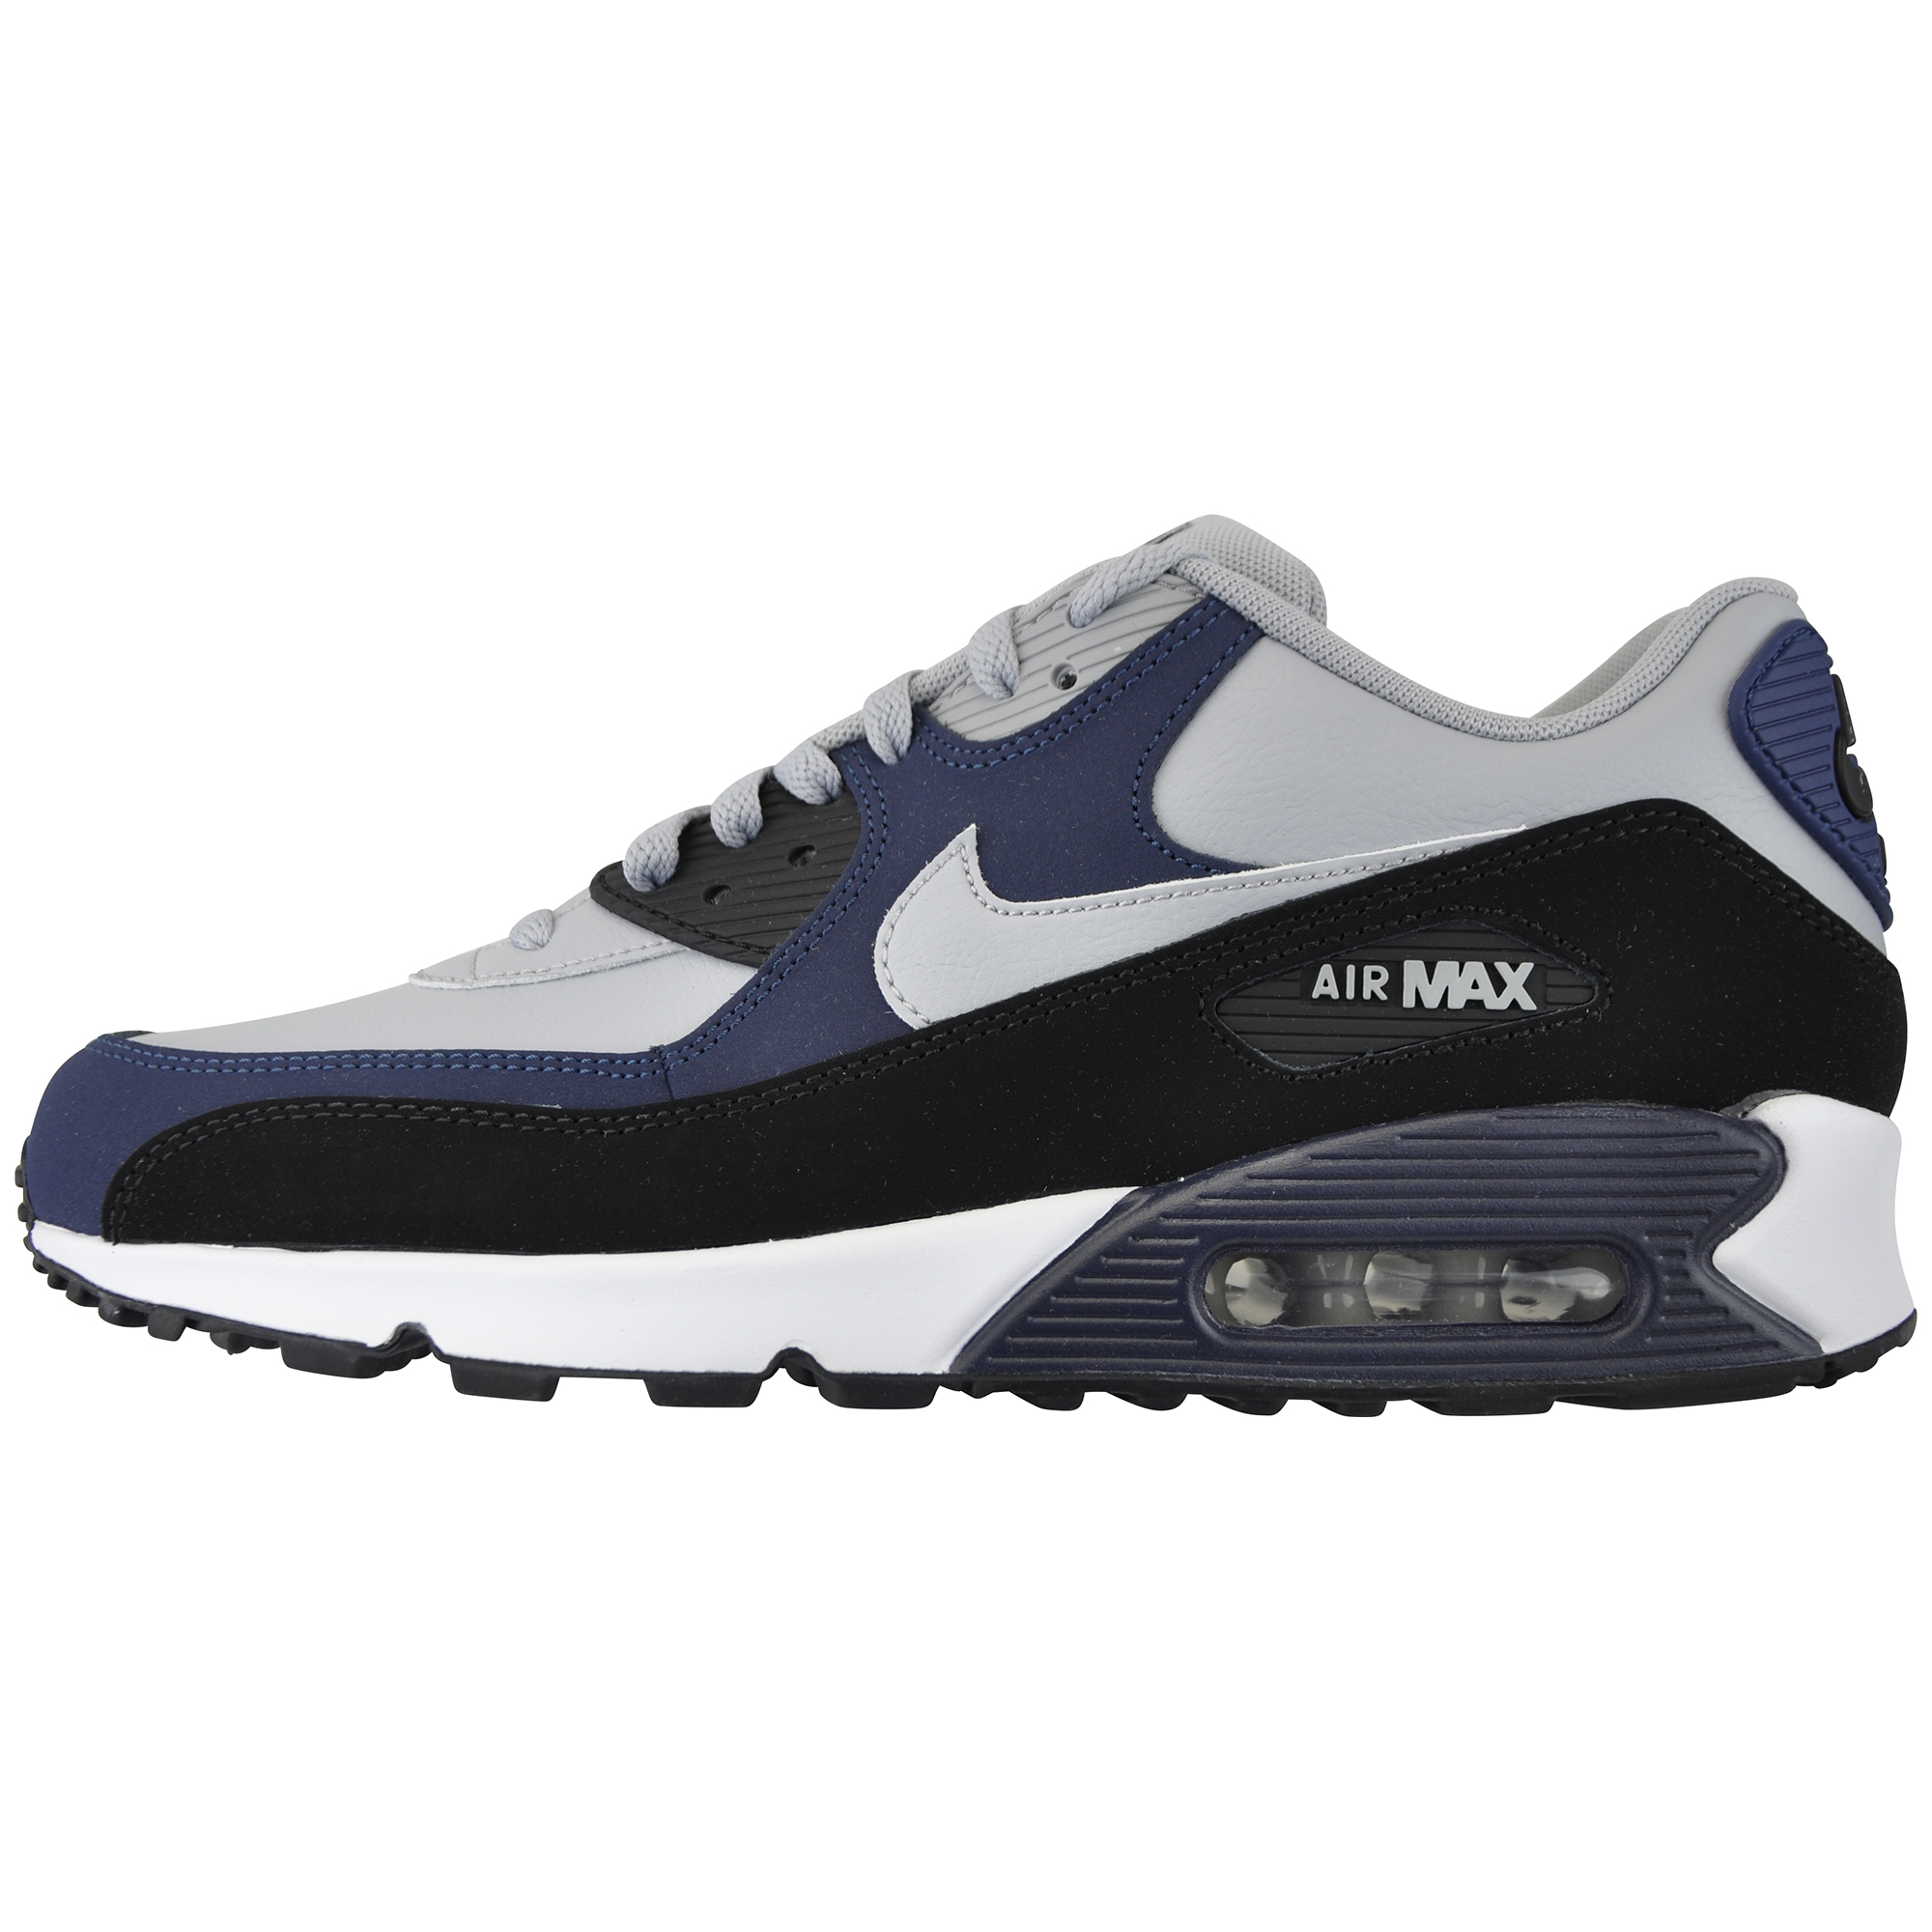 Nike Aix Max 90 Essential 2015 Command tavas ultra sneaker chaussures